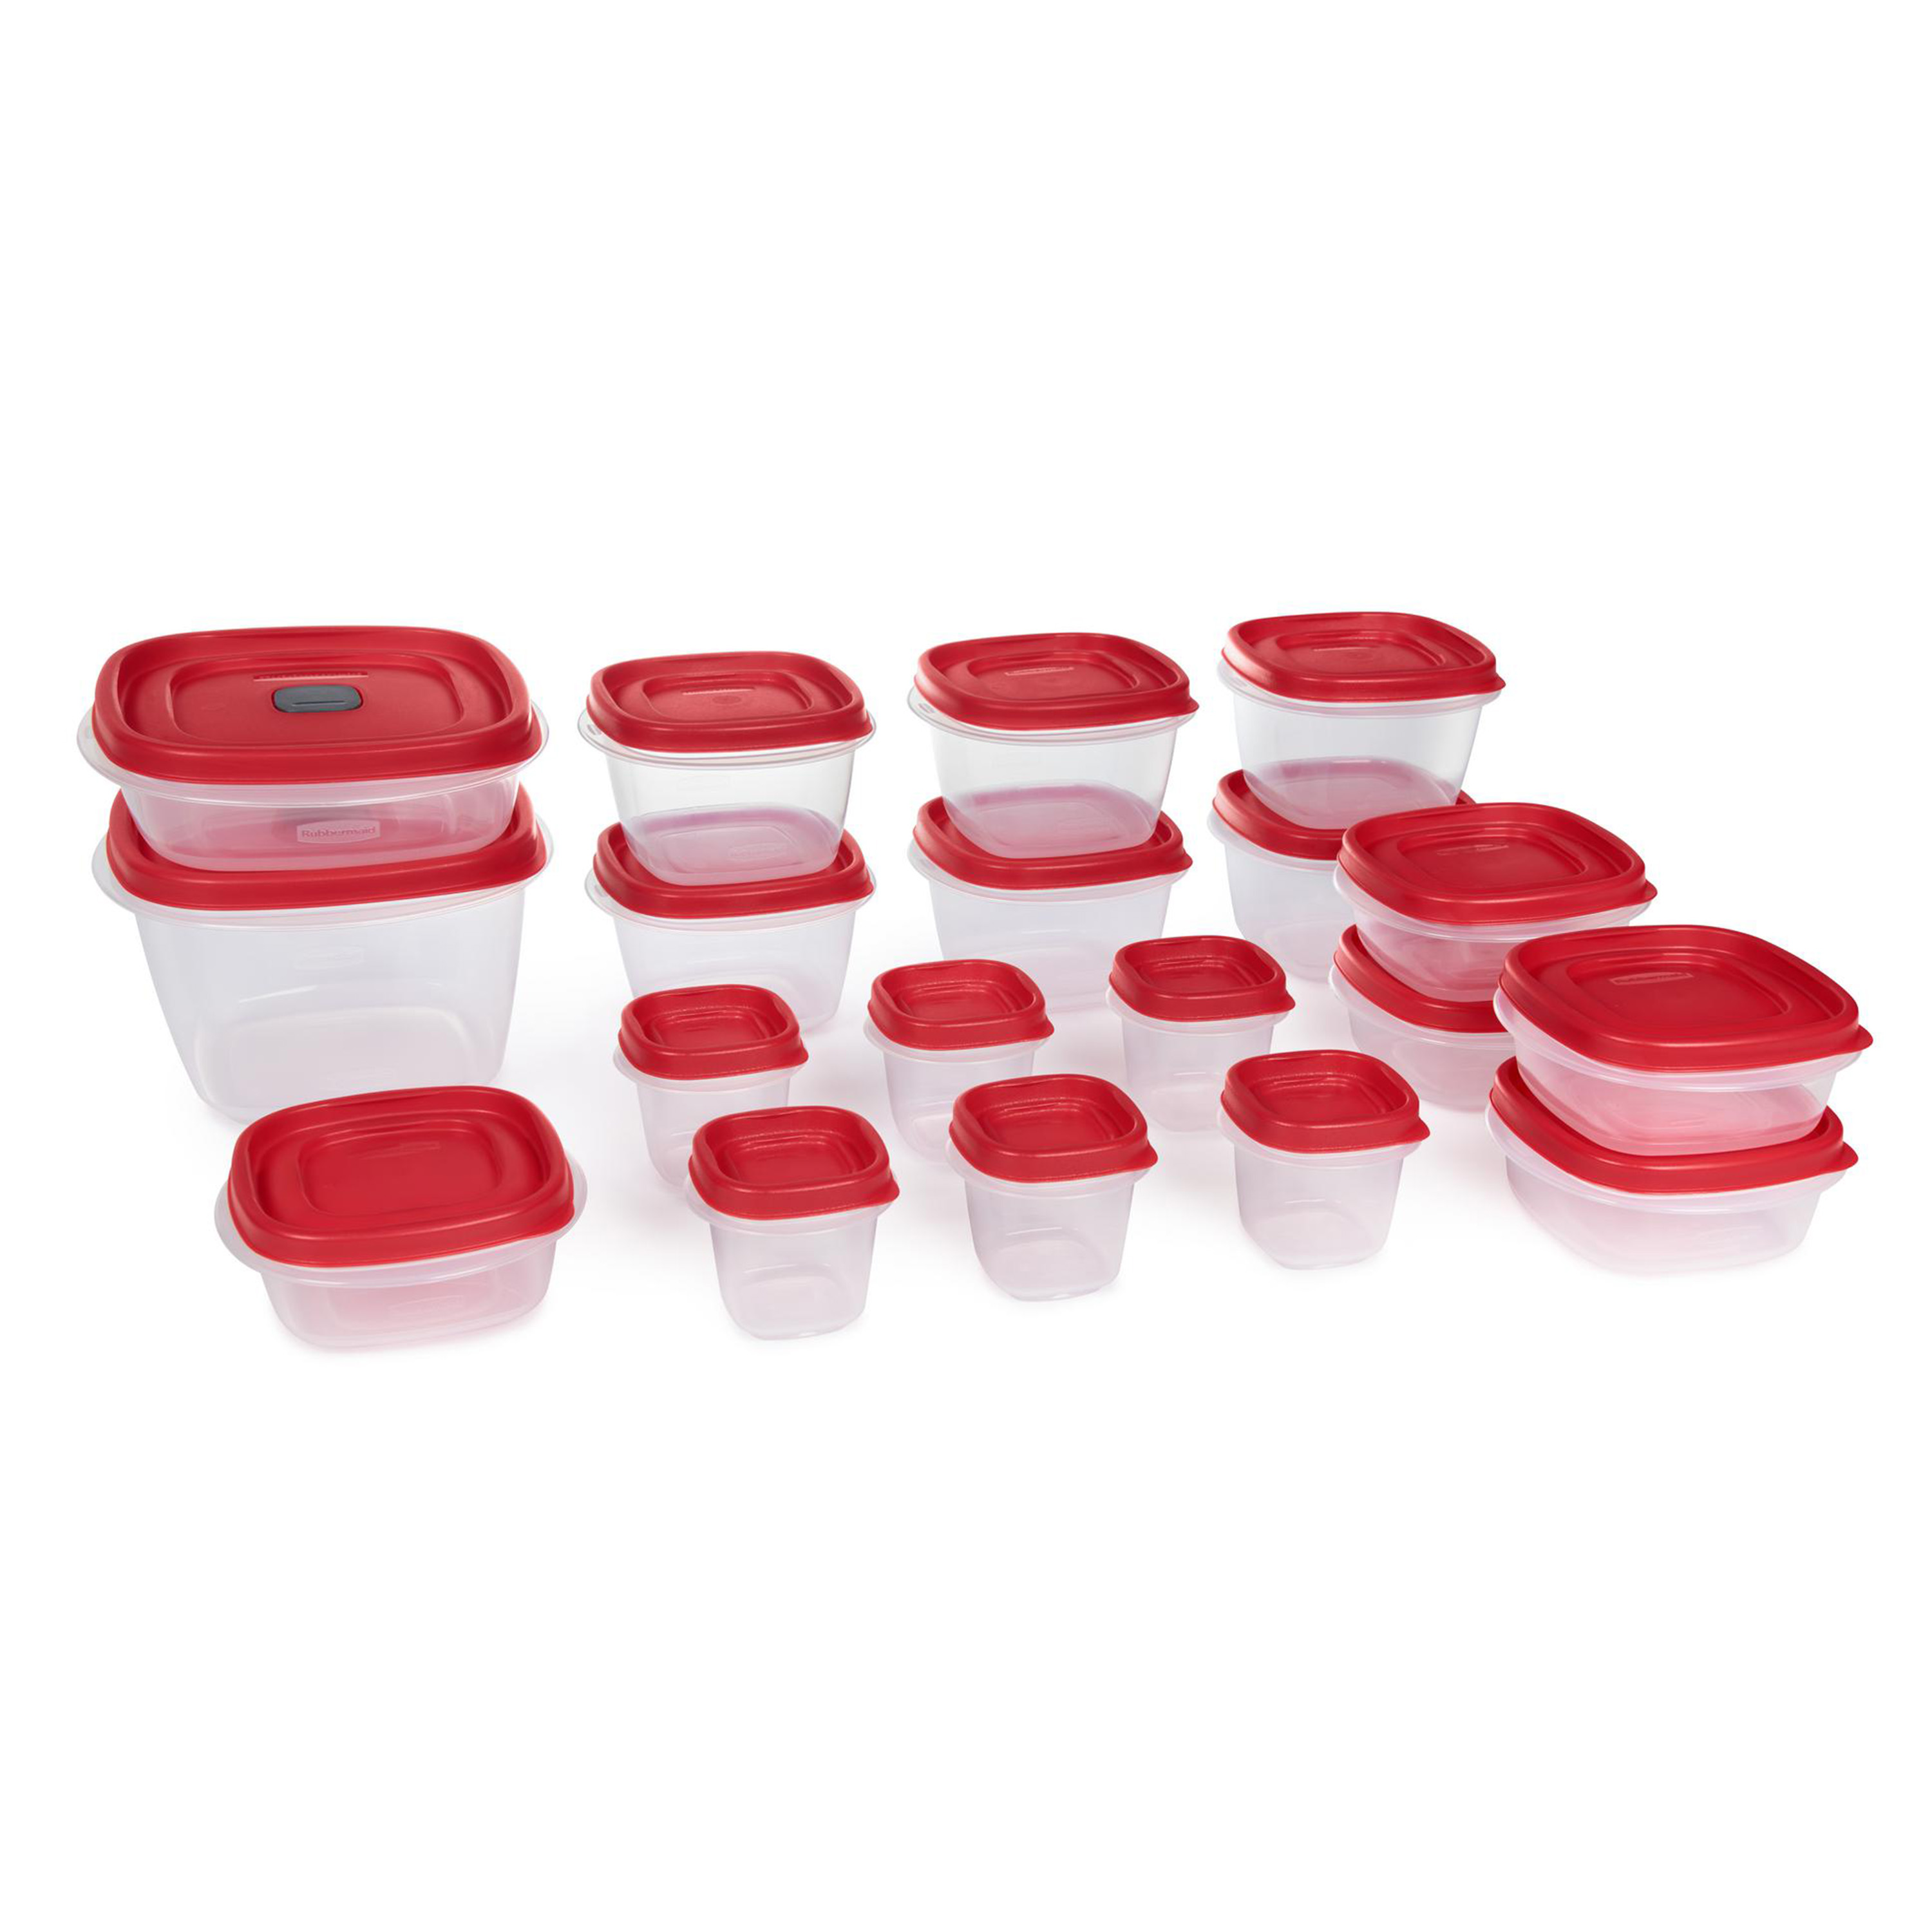 Rubbermaid Easy Find Vented Lids Food Storage Containers 38-Piece Set NEW Red